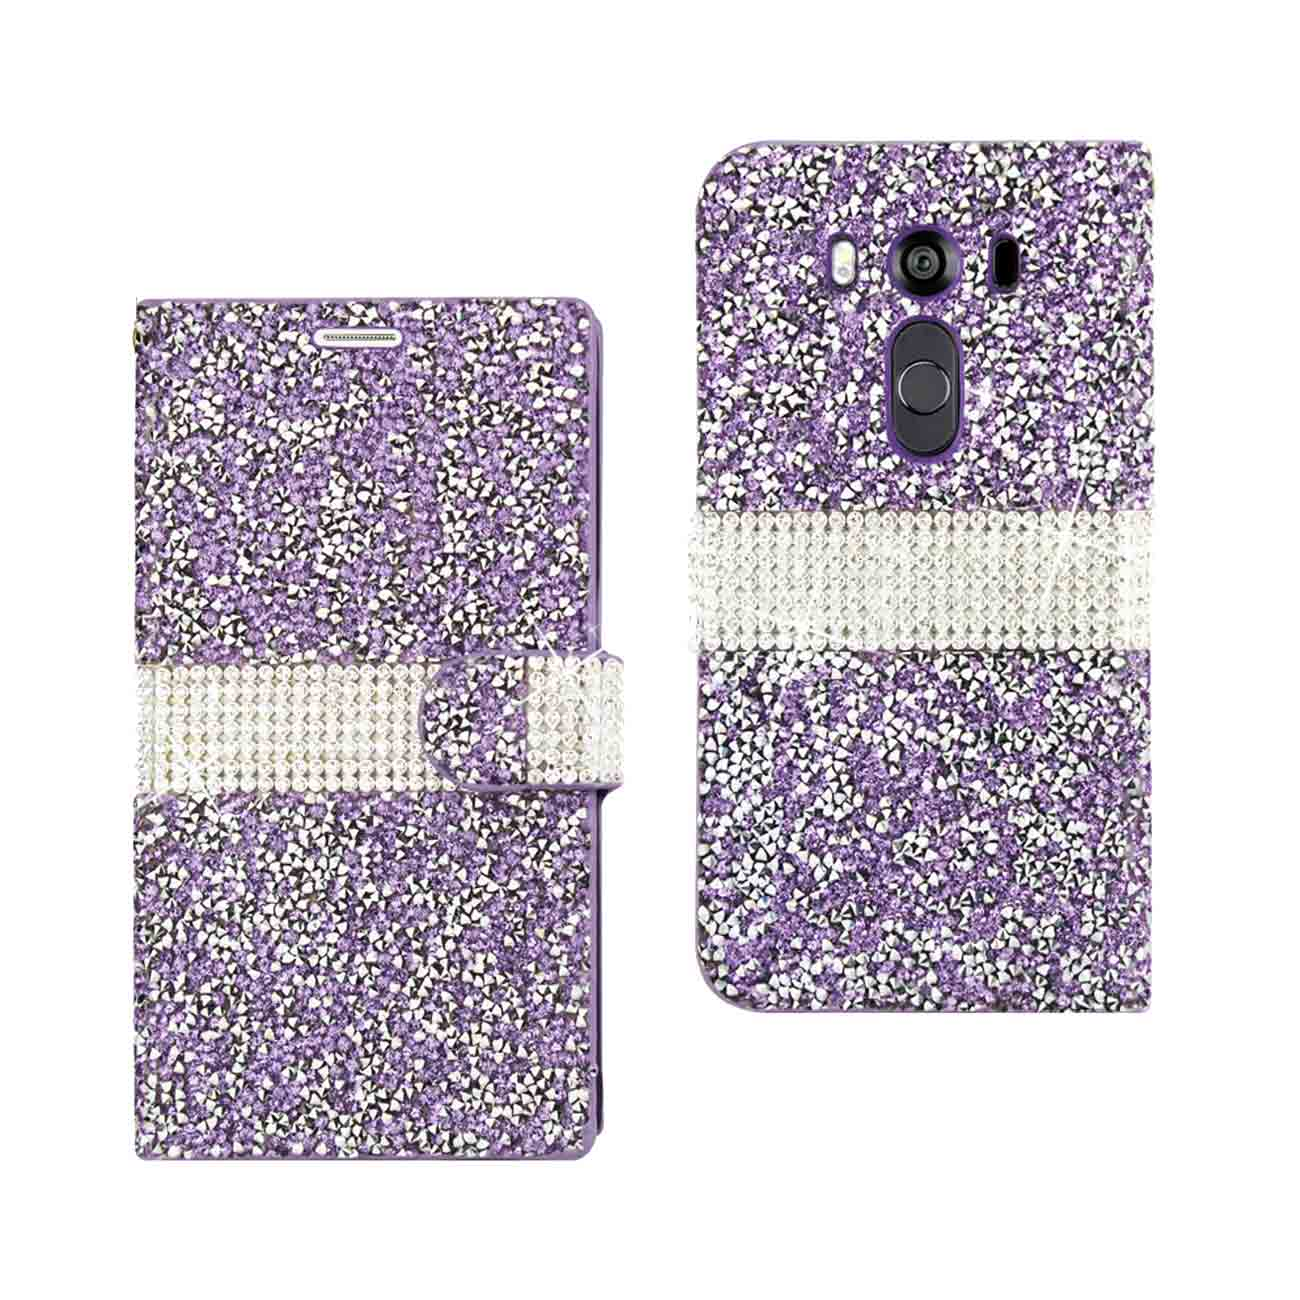 LG V10 JEWELRY RHINESTONE WALLET CASE IN PURPLE